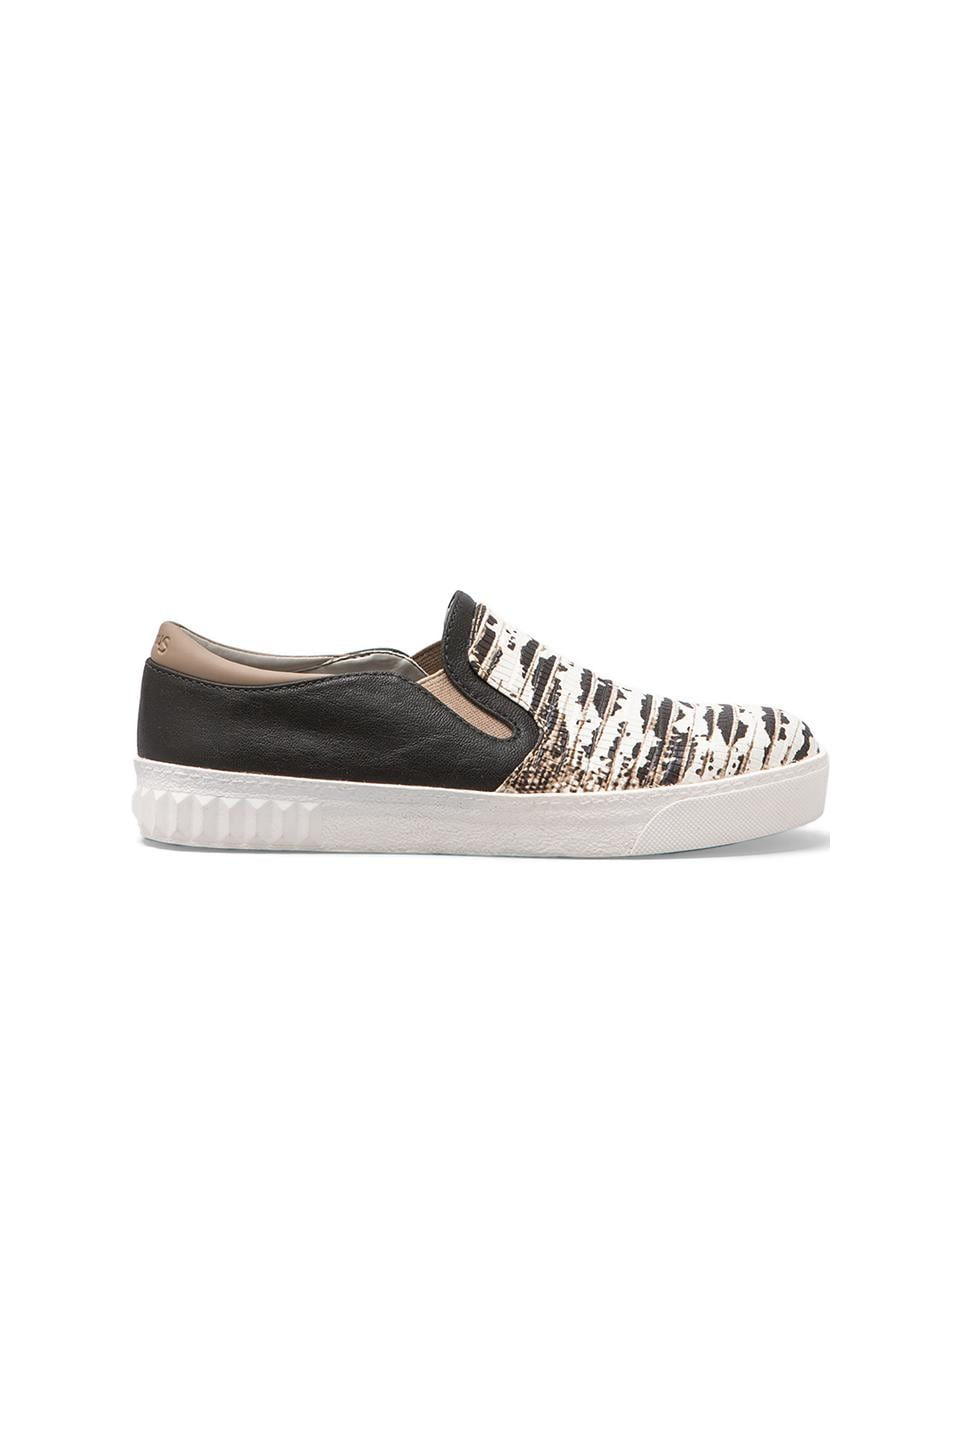 Circus by Sam Edelman Cruz Slip-On in Black/White